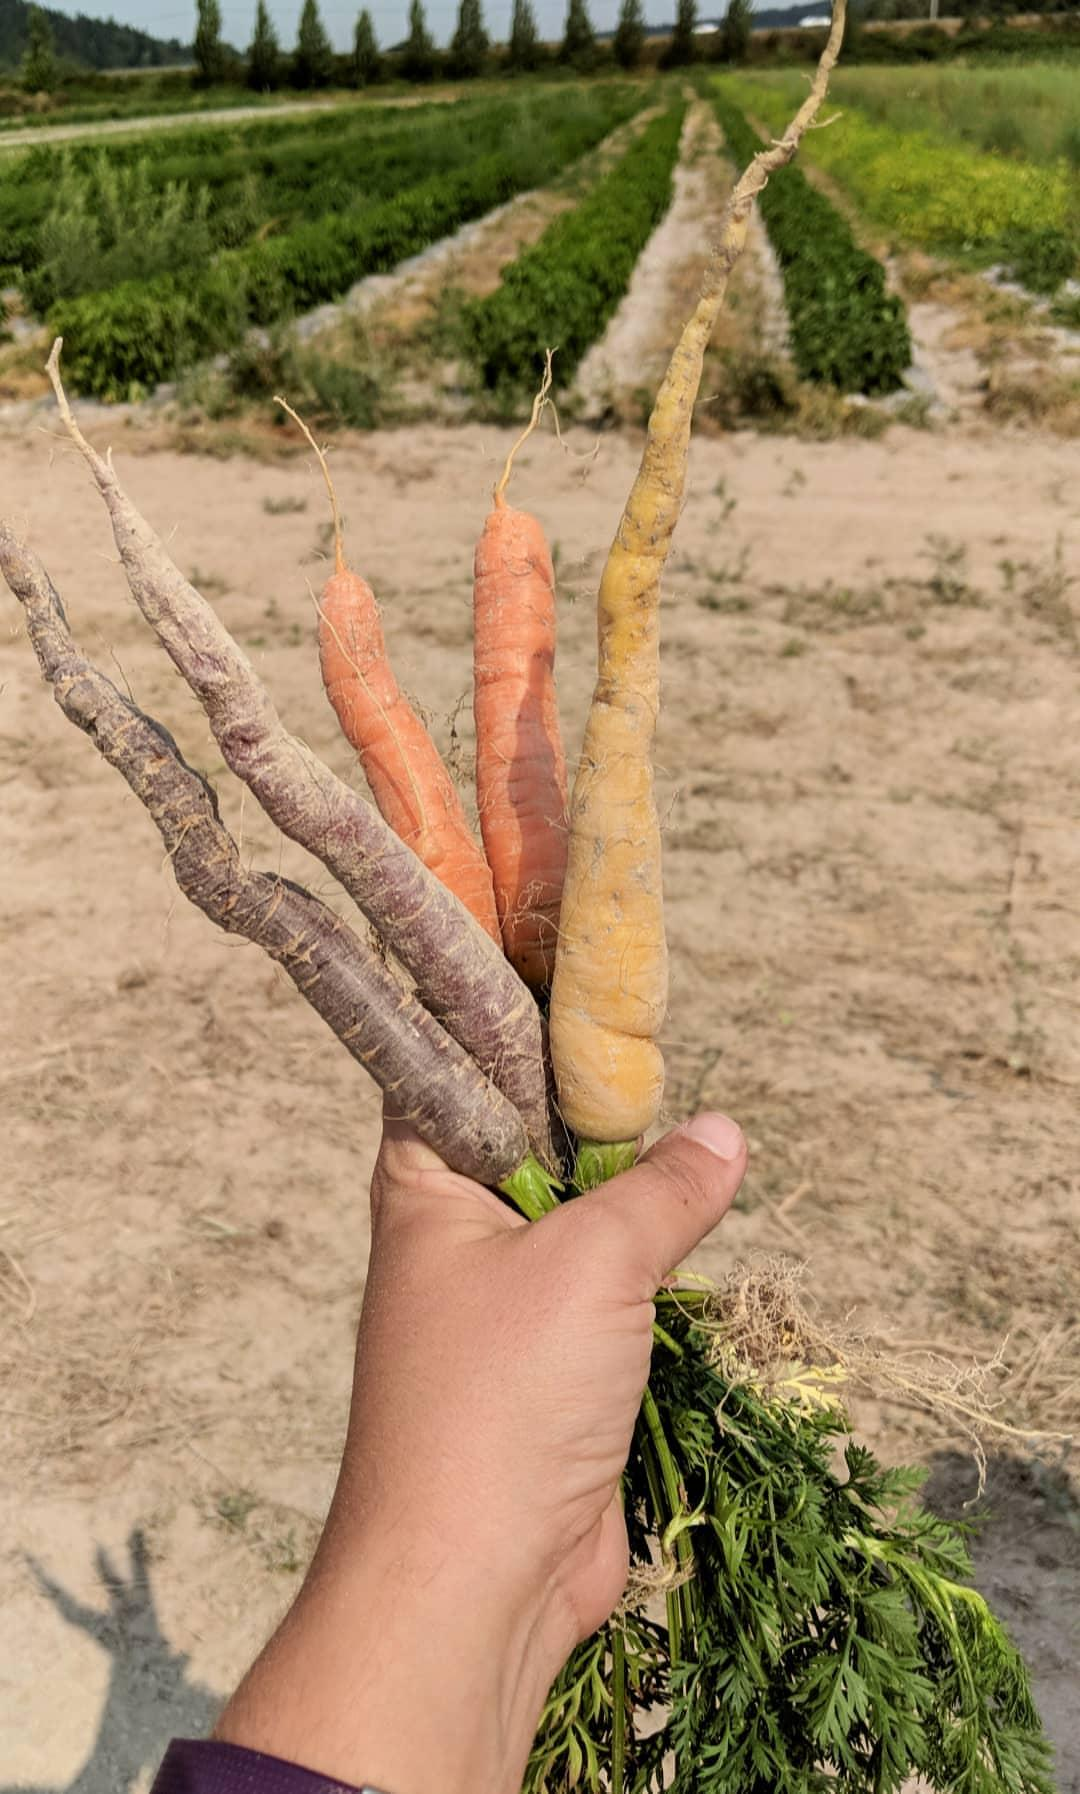 Carrots grown at Sound Sustainable Farms